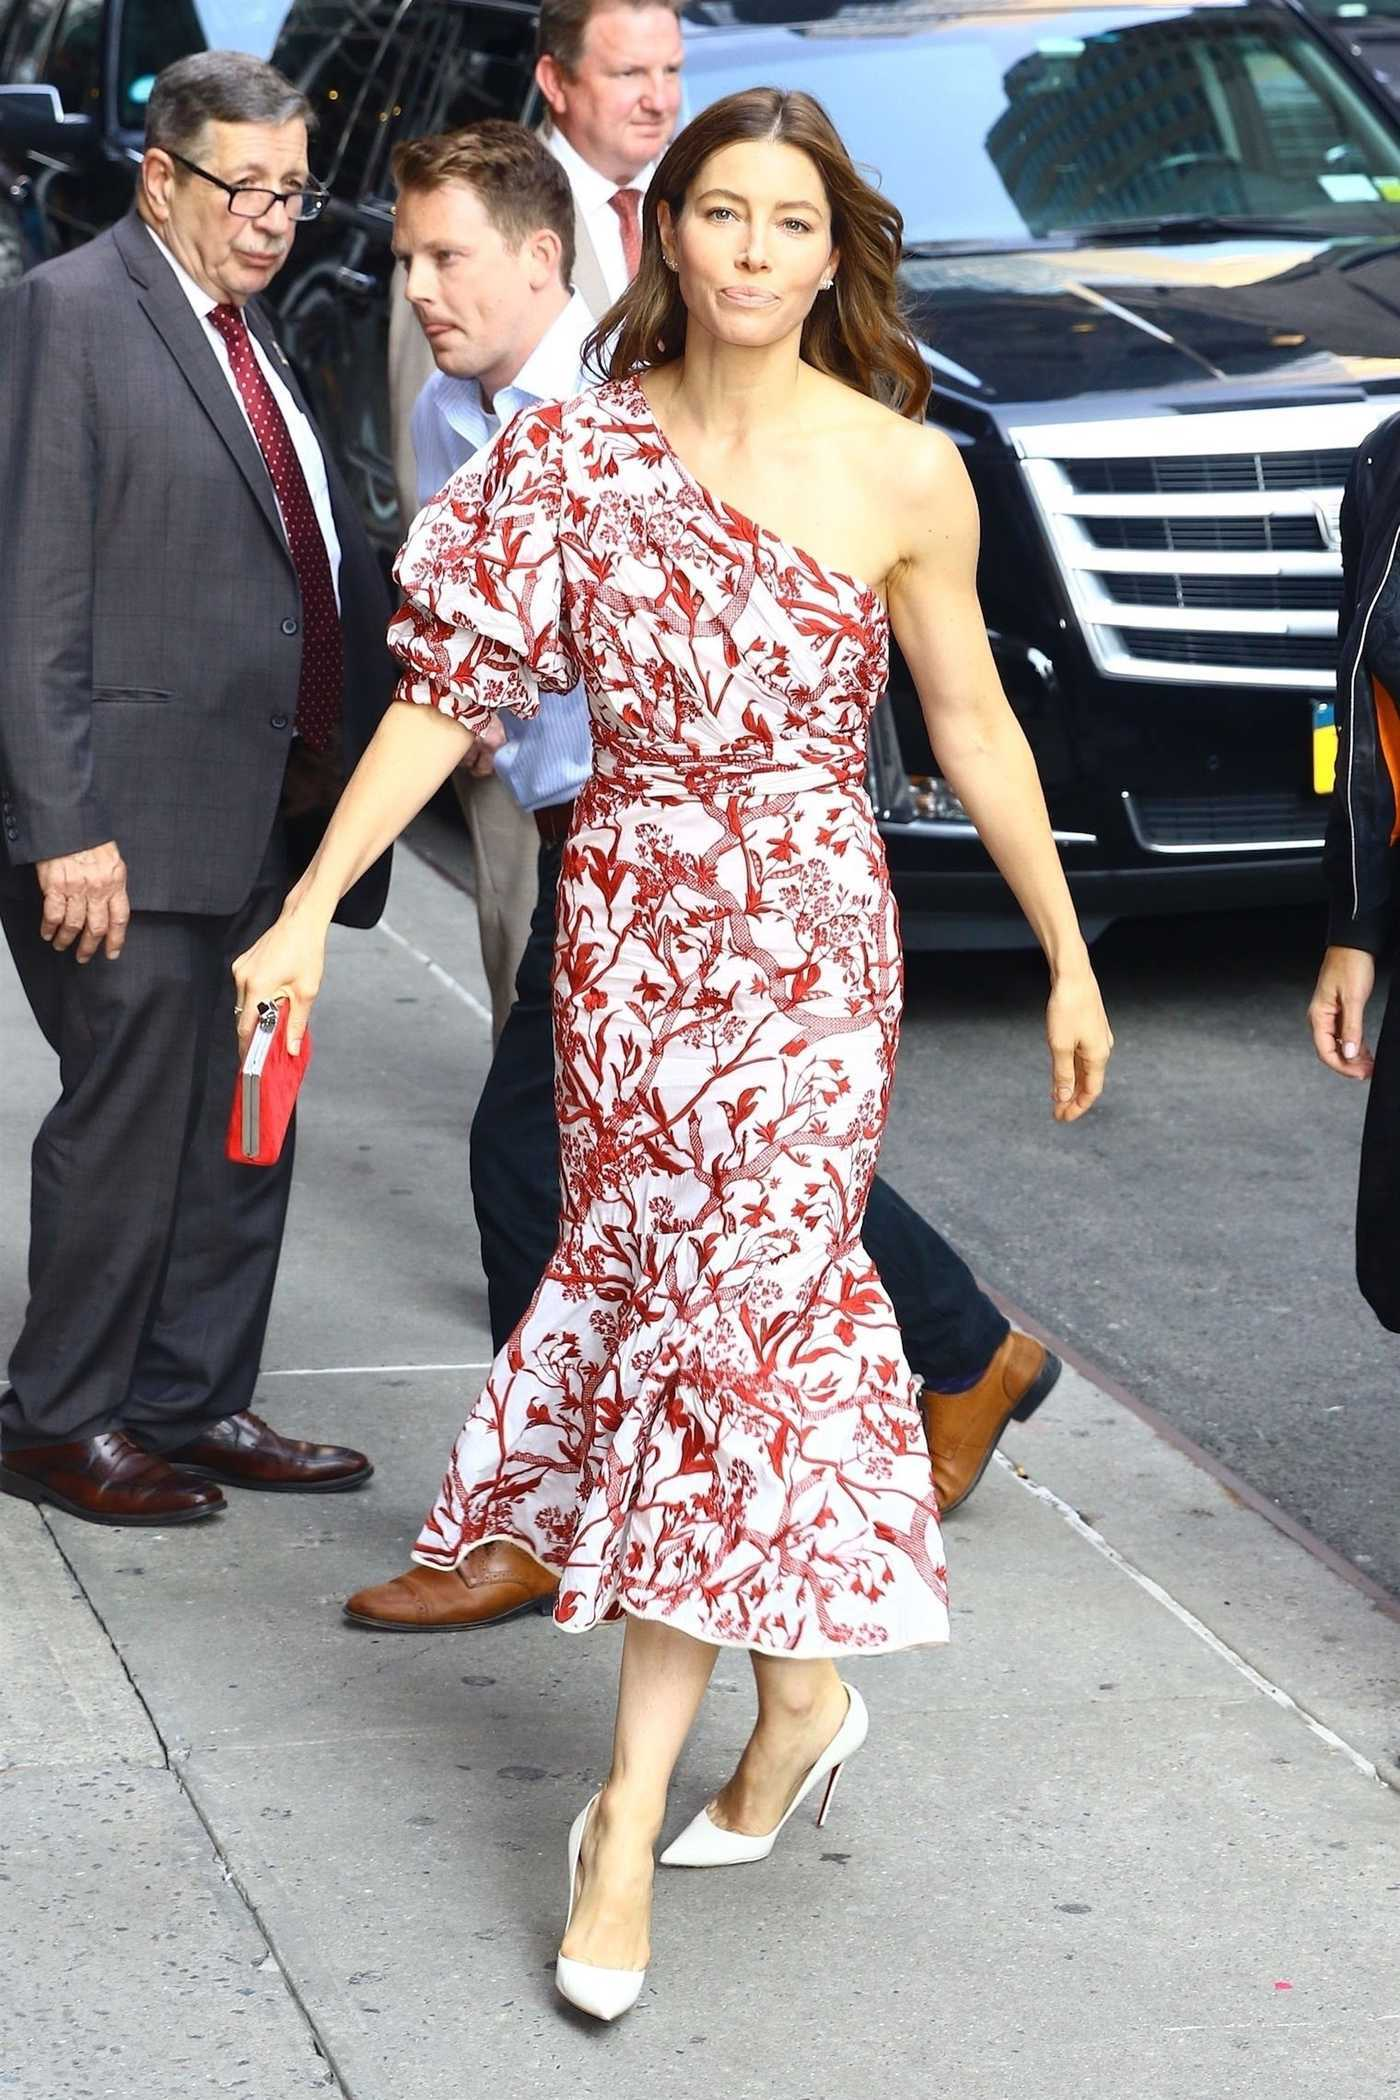 Jessica Biel in a Floral Dress Arrives at the Stephen Colbert Show in New York 08/15/2018